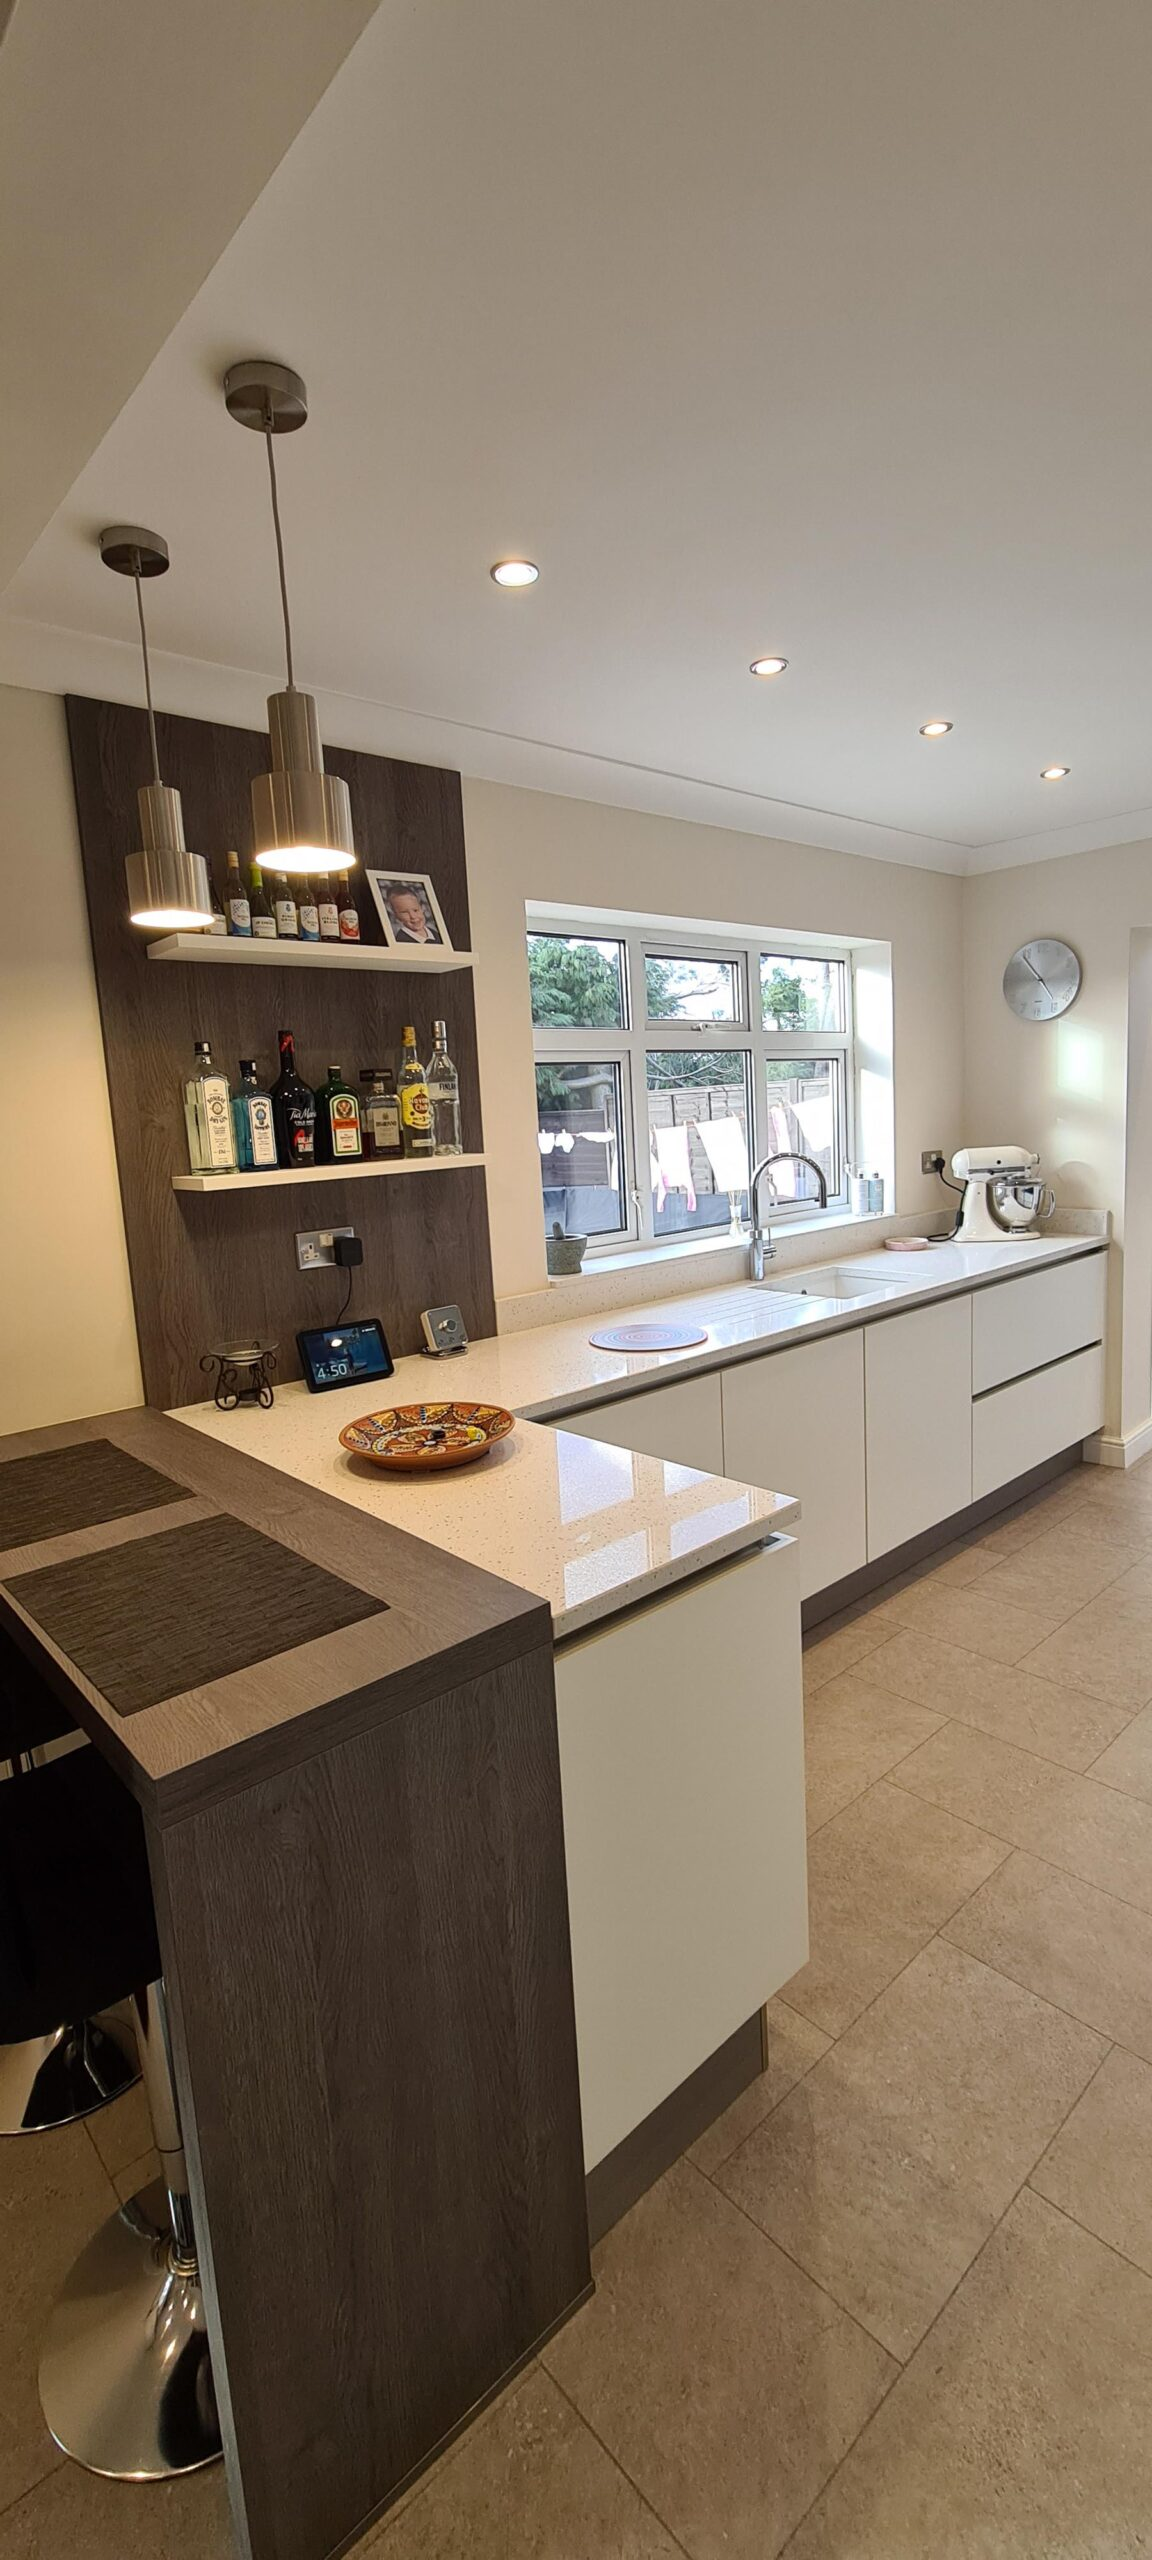 An image of a kitchen with a white marble L shaped counter